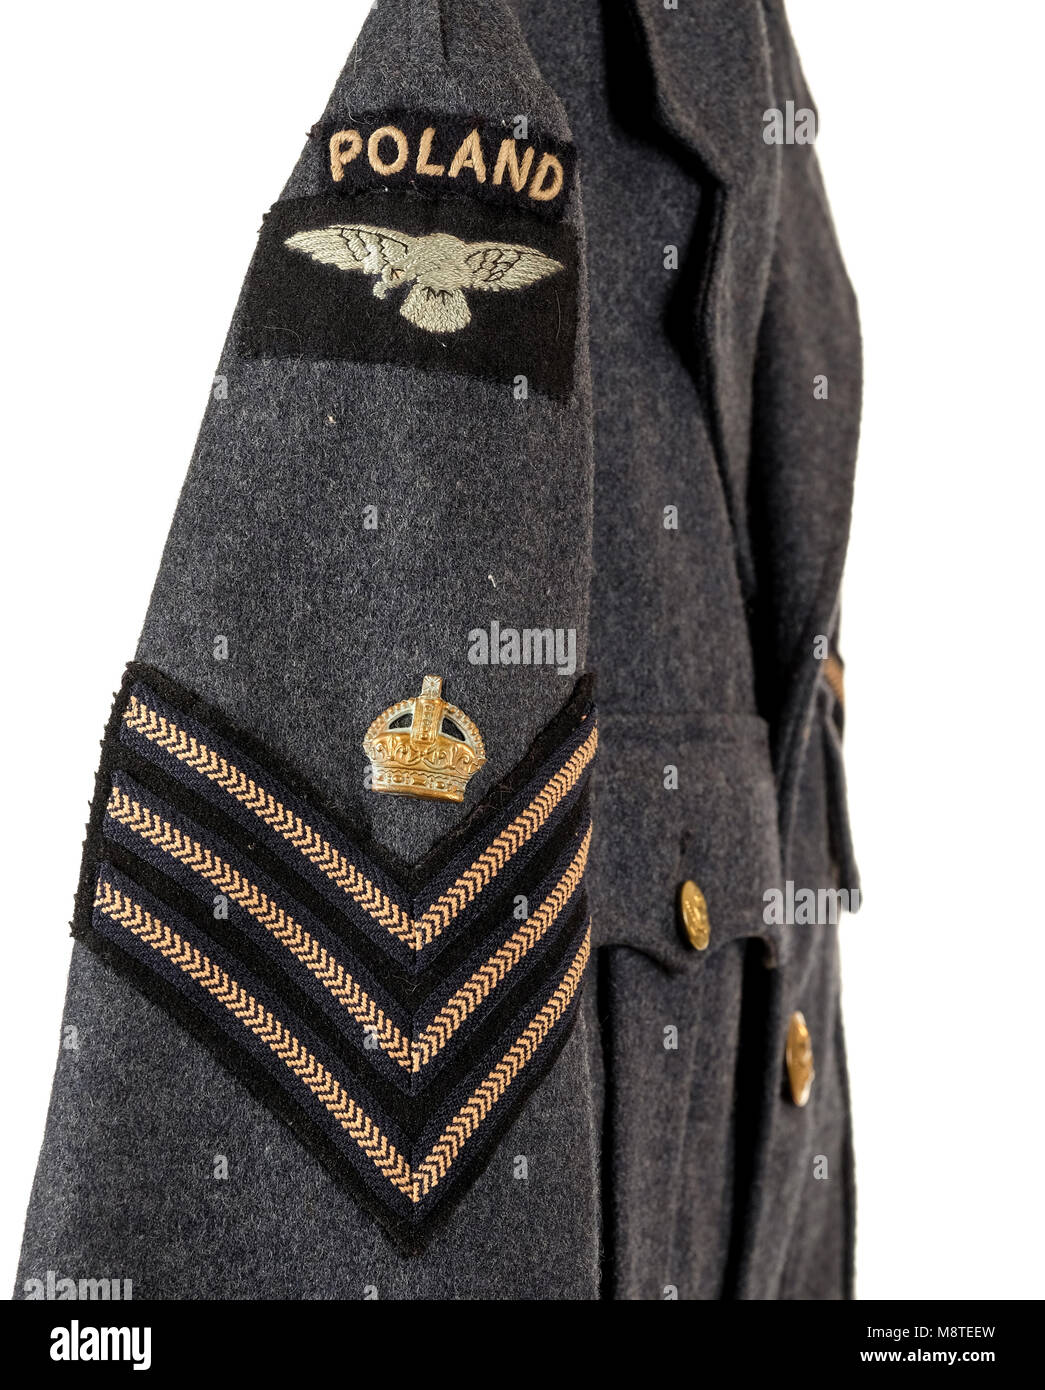 WW2 British RAF tunic worn by a Sergeant of the Polish Air Force - Stock Image